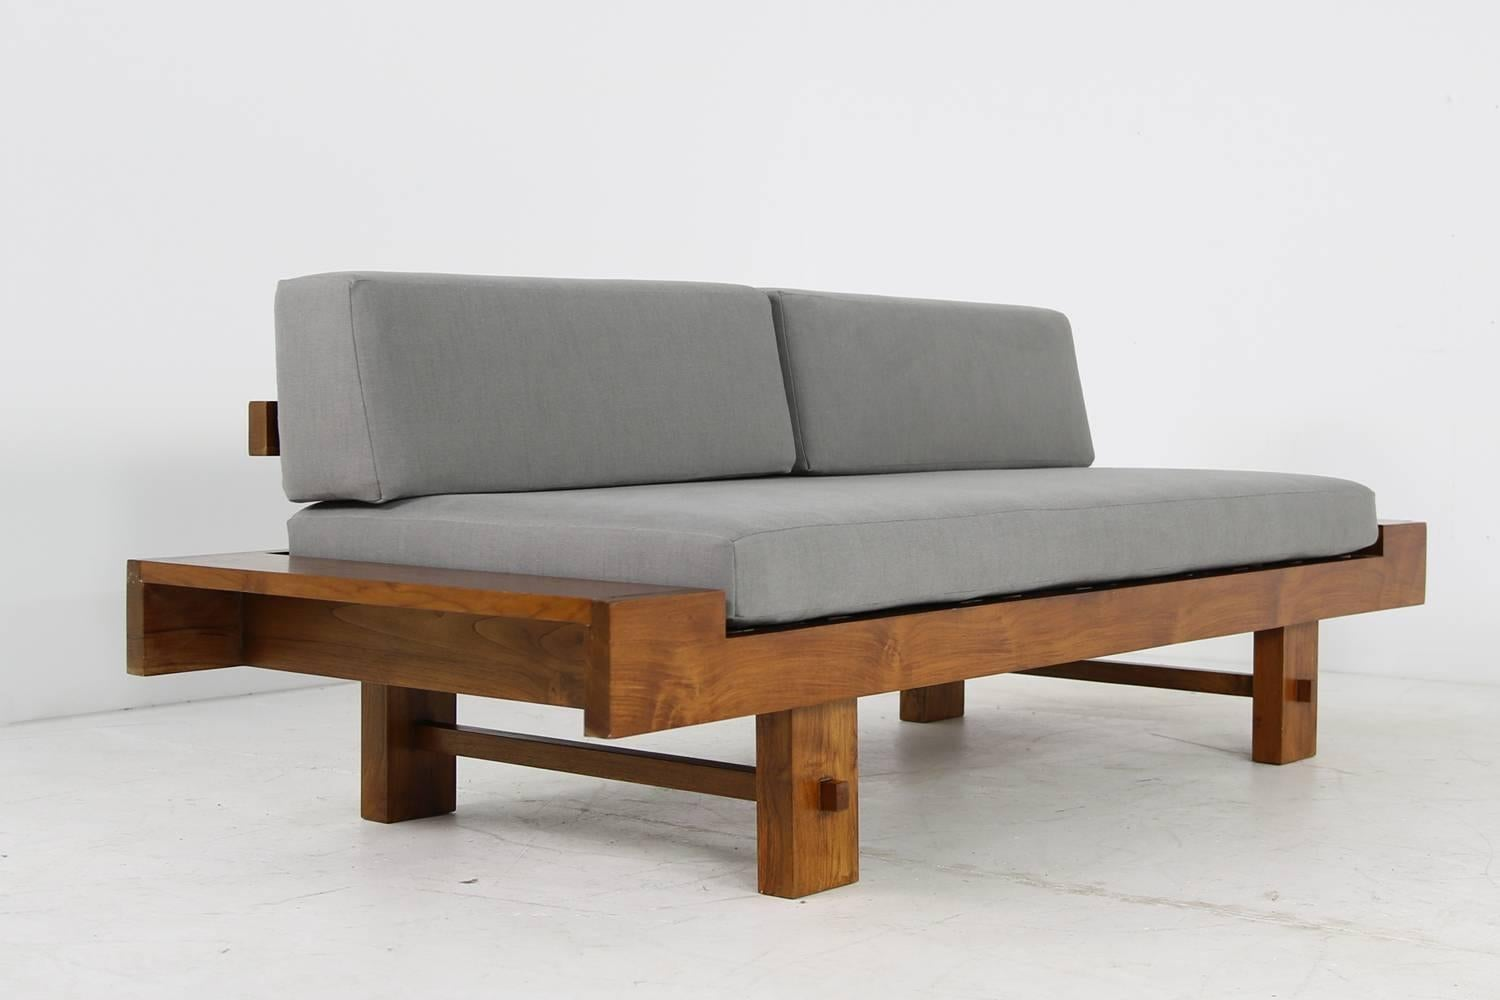 Unique Solid Balinese Teak Wood 1970s Daybed Sofa With New Grey Upholstery  For Sale At 1stdibs